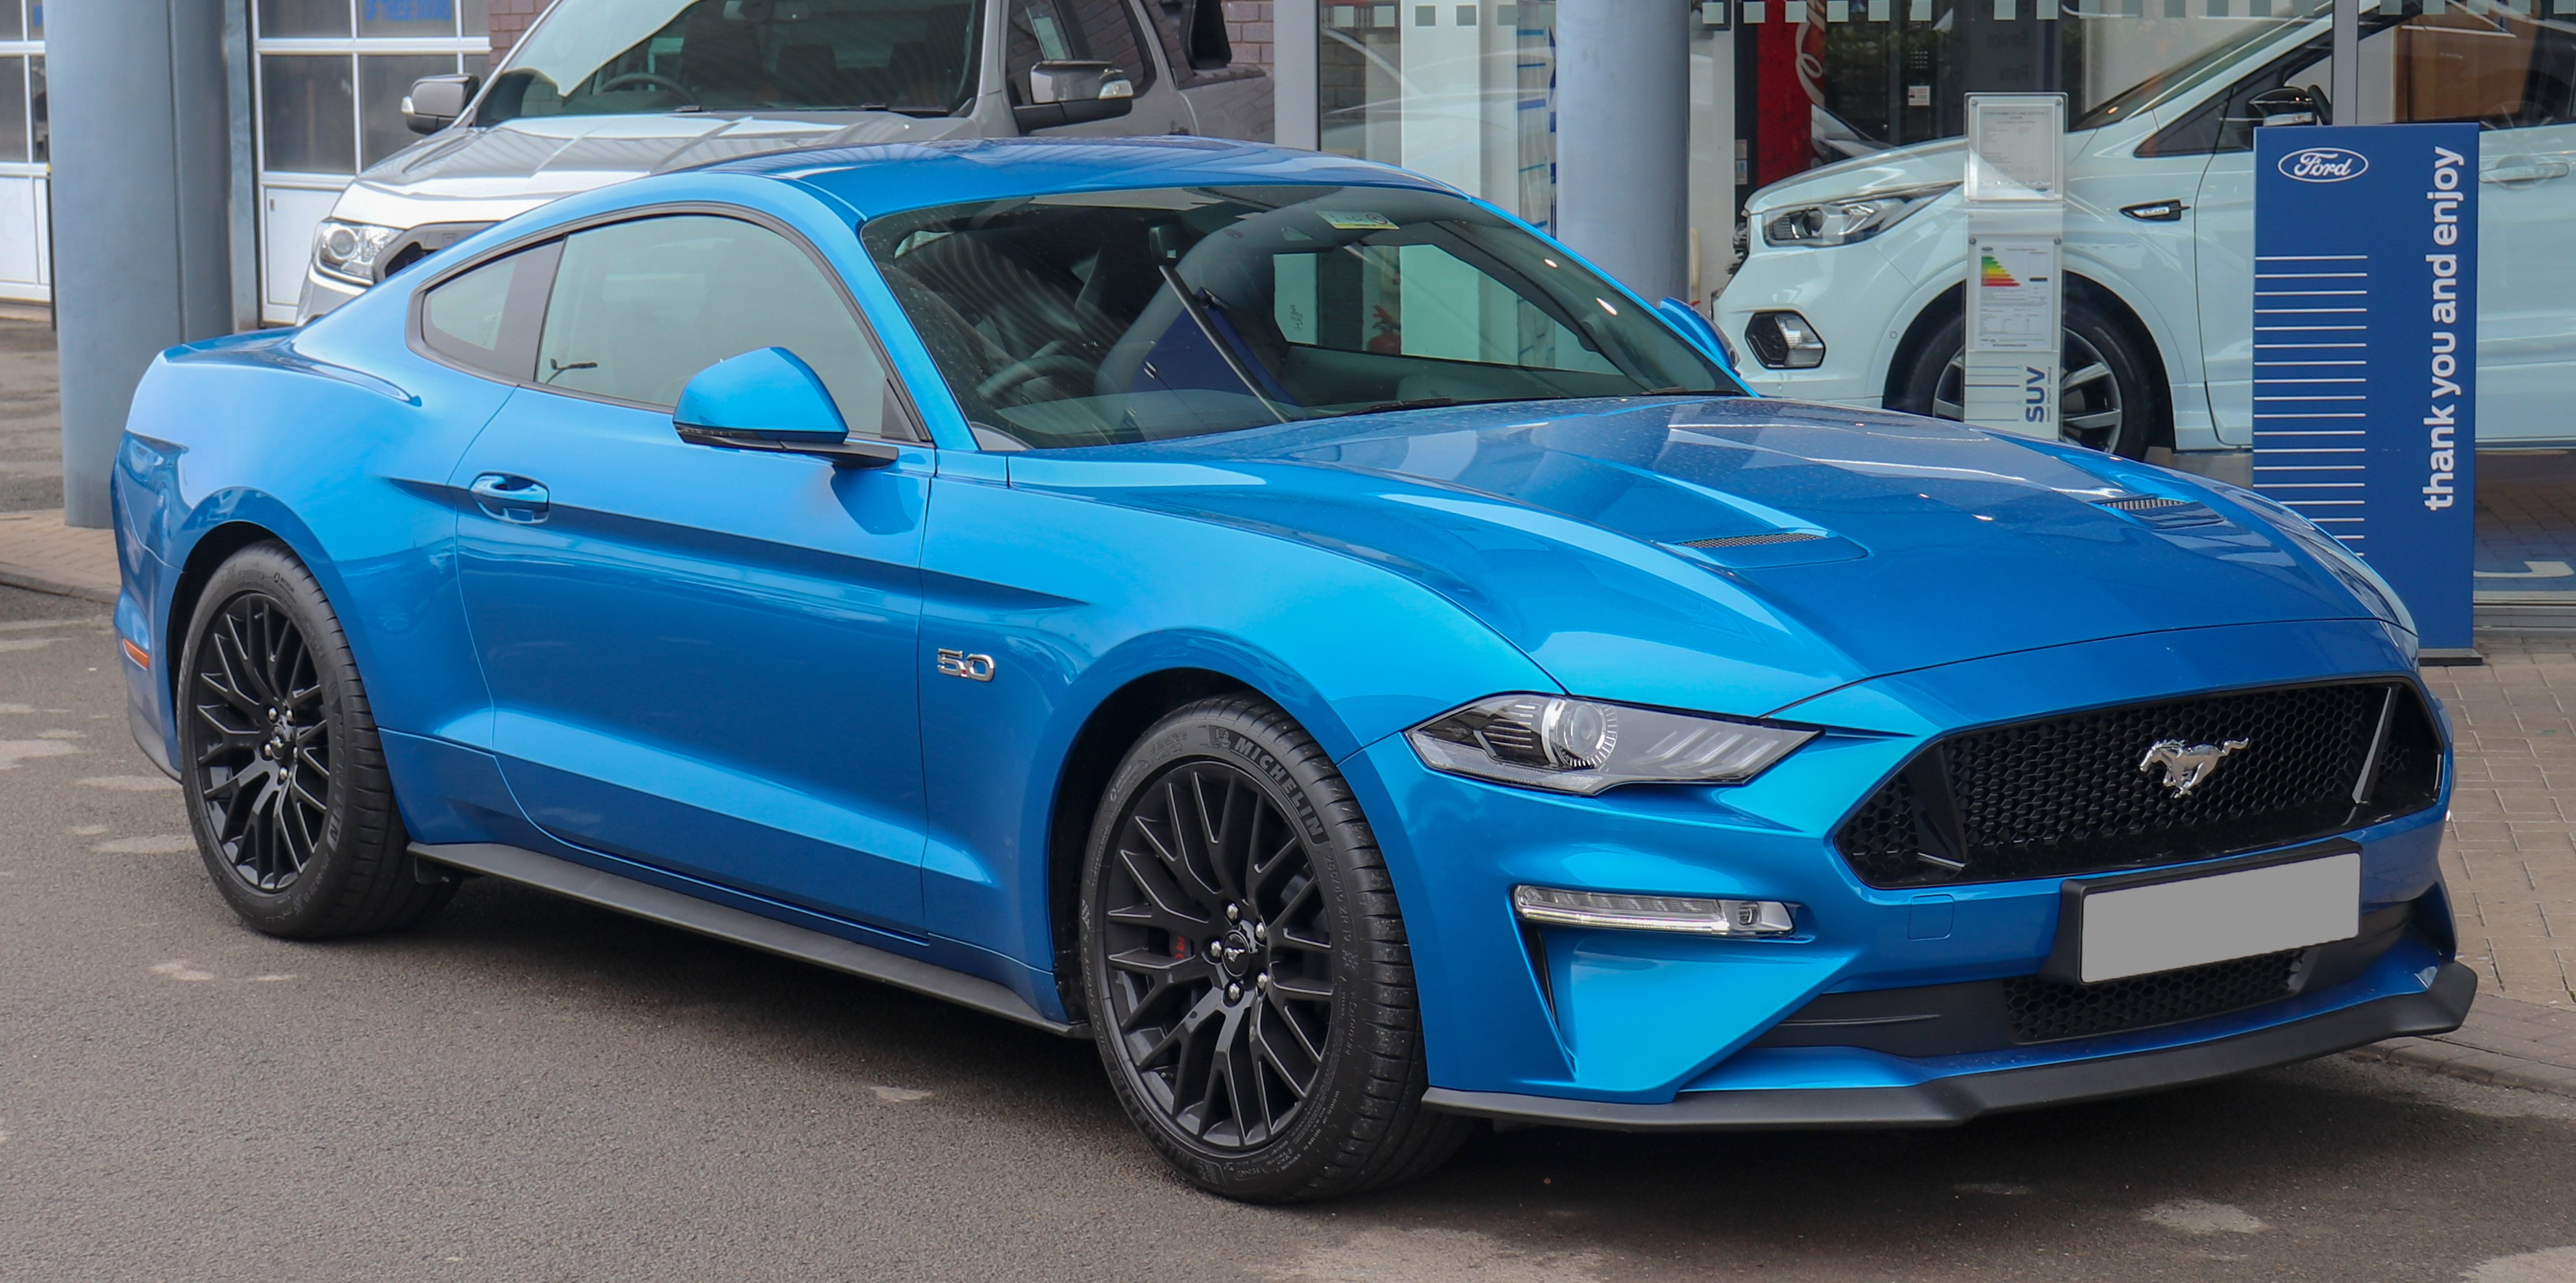 Ford mustang the complete information and online sale with free shipping order and buy now for the lowest price in the best online store